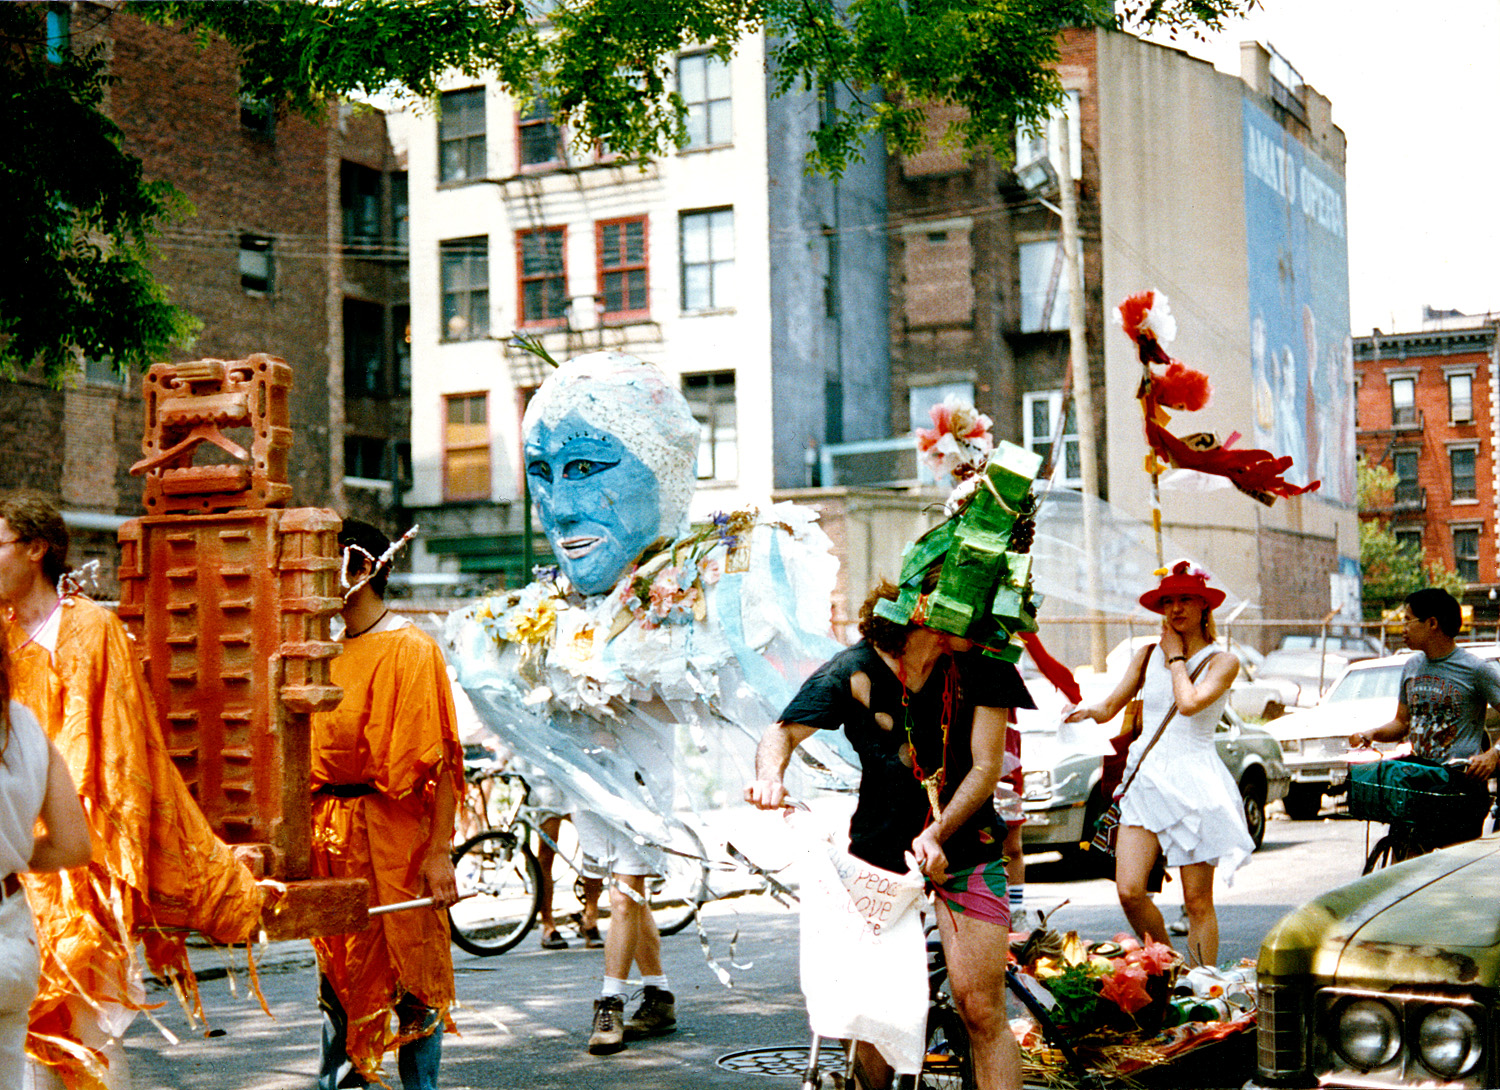 Giant puppets went on parade to support the community gardens of the East Village and Lower East Side.